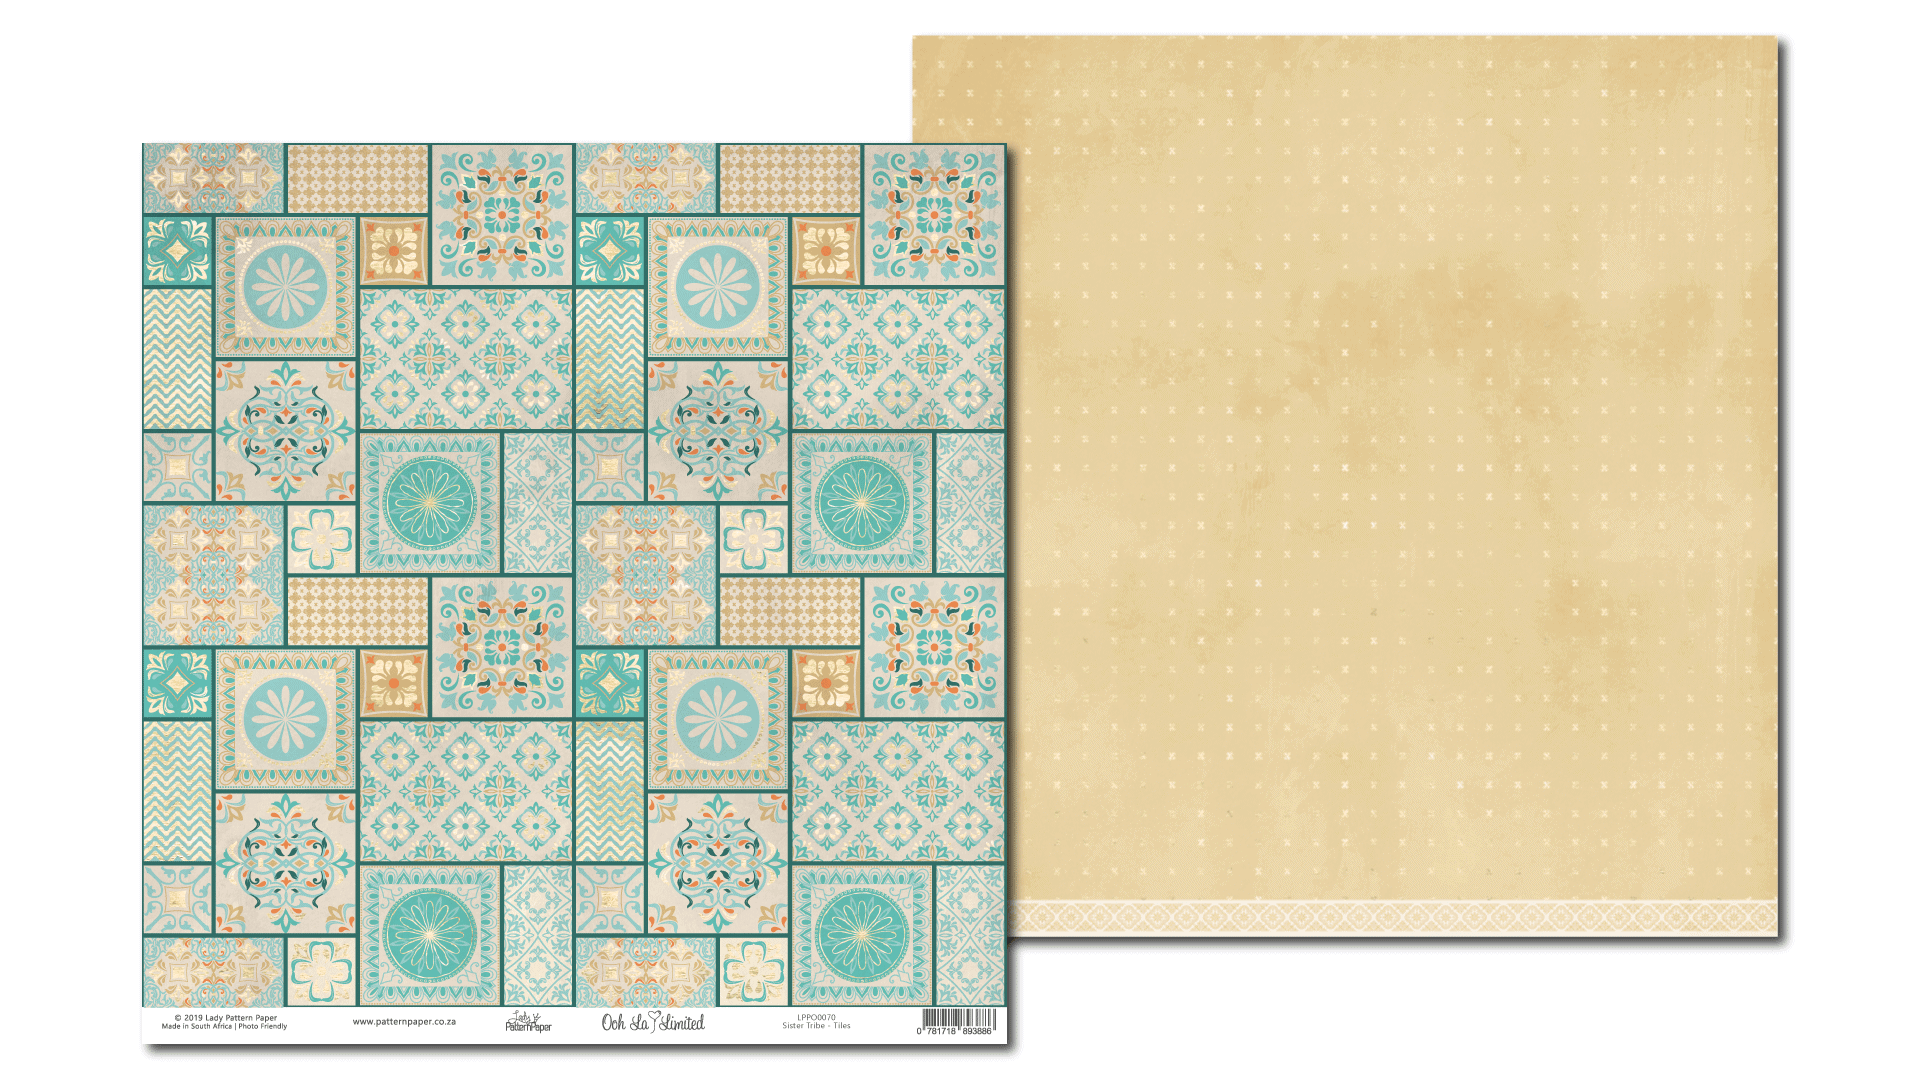 LPPO0070 - Ooh La Limited - Sister TRIBE - Tiles